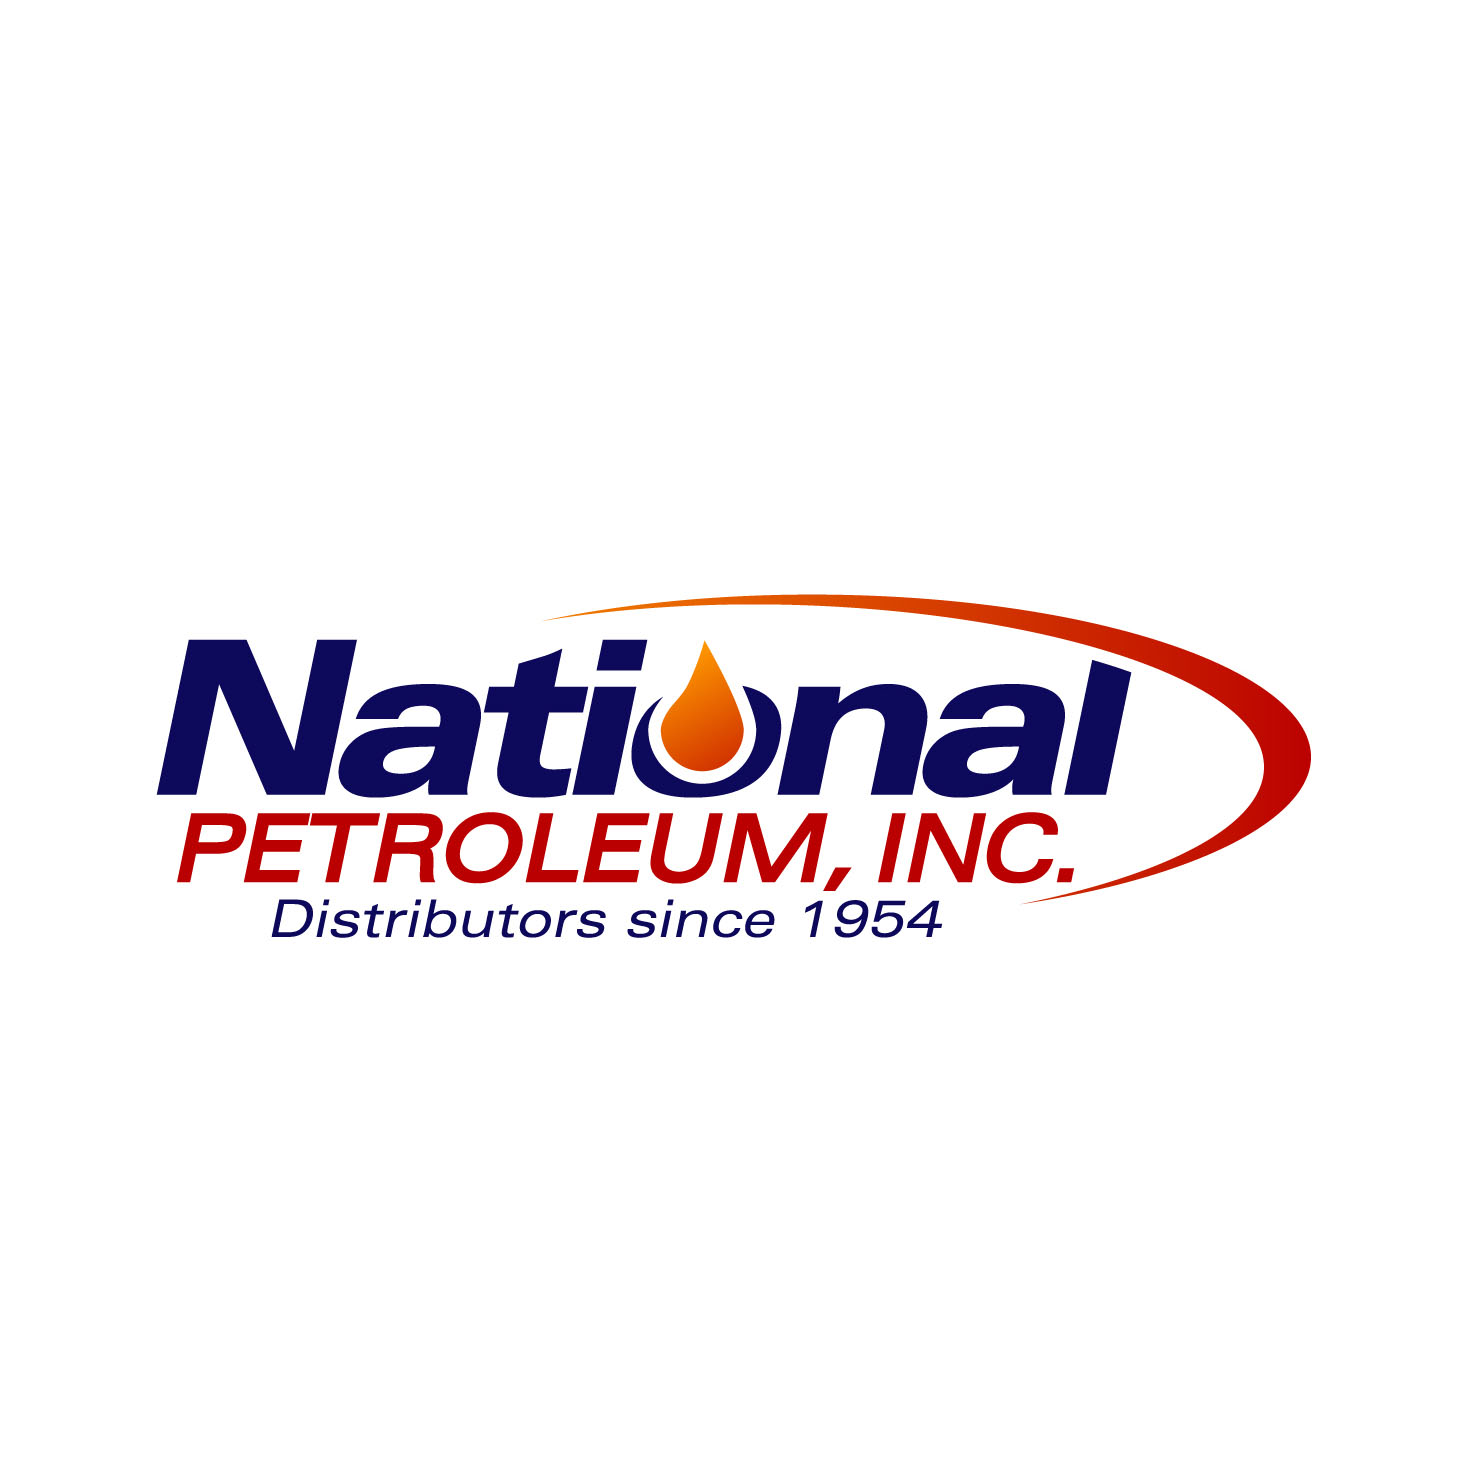 National Petroleum Inc